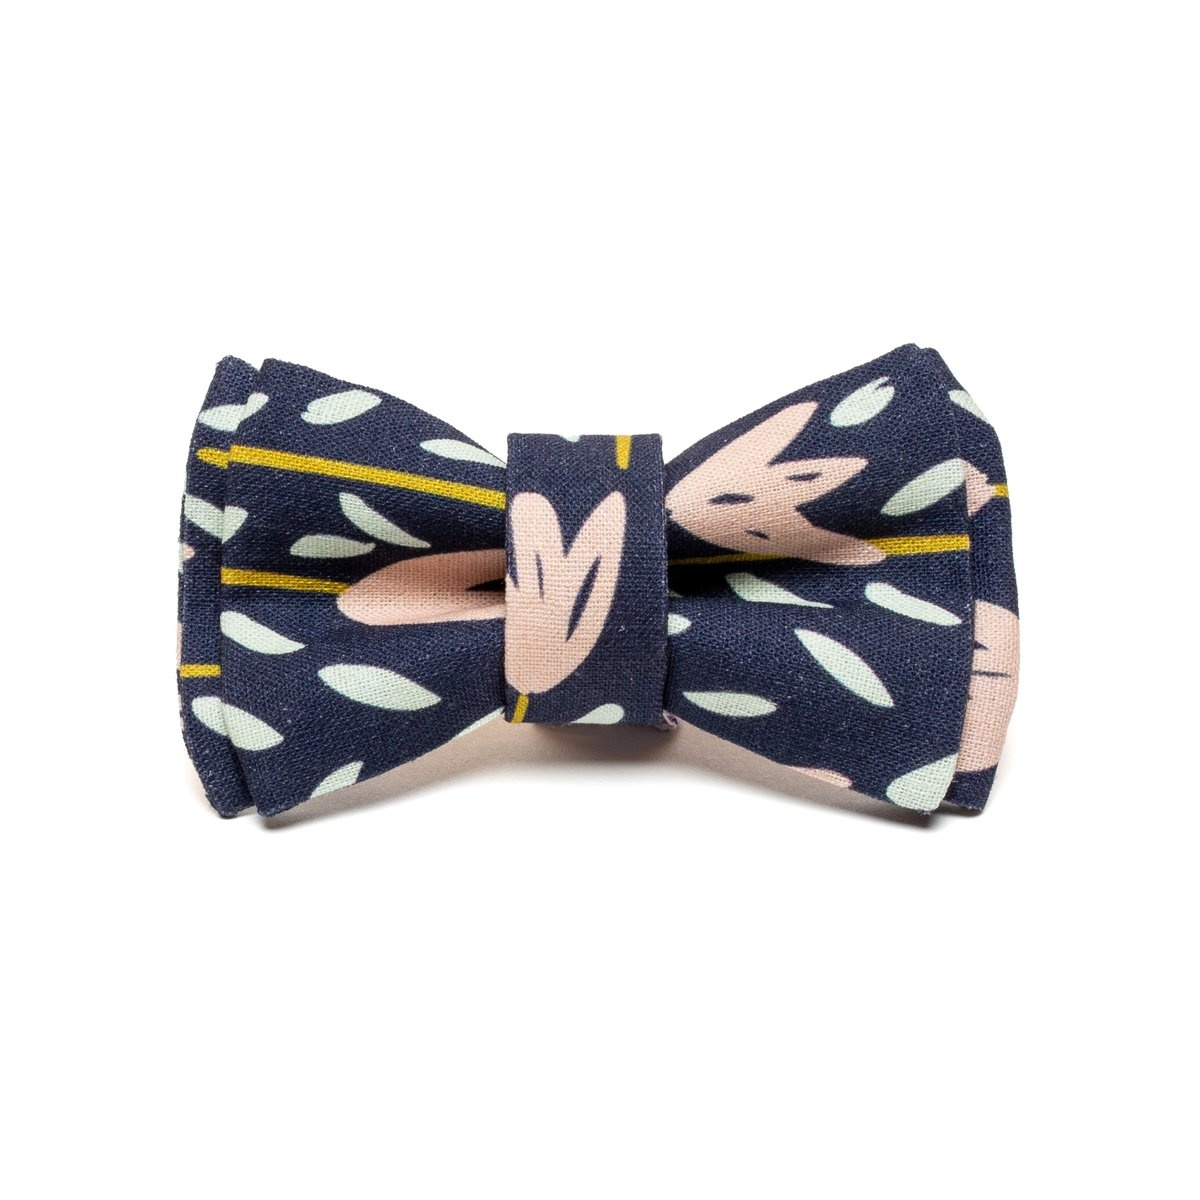 Eat Play Wag Eat Play Wag - Evening Meadow Bow Tie M